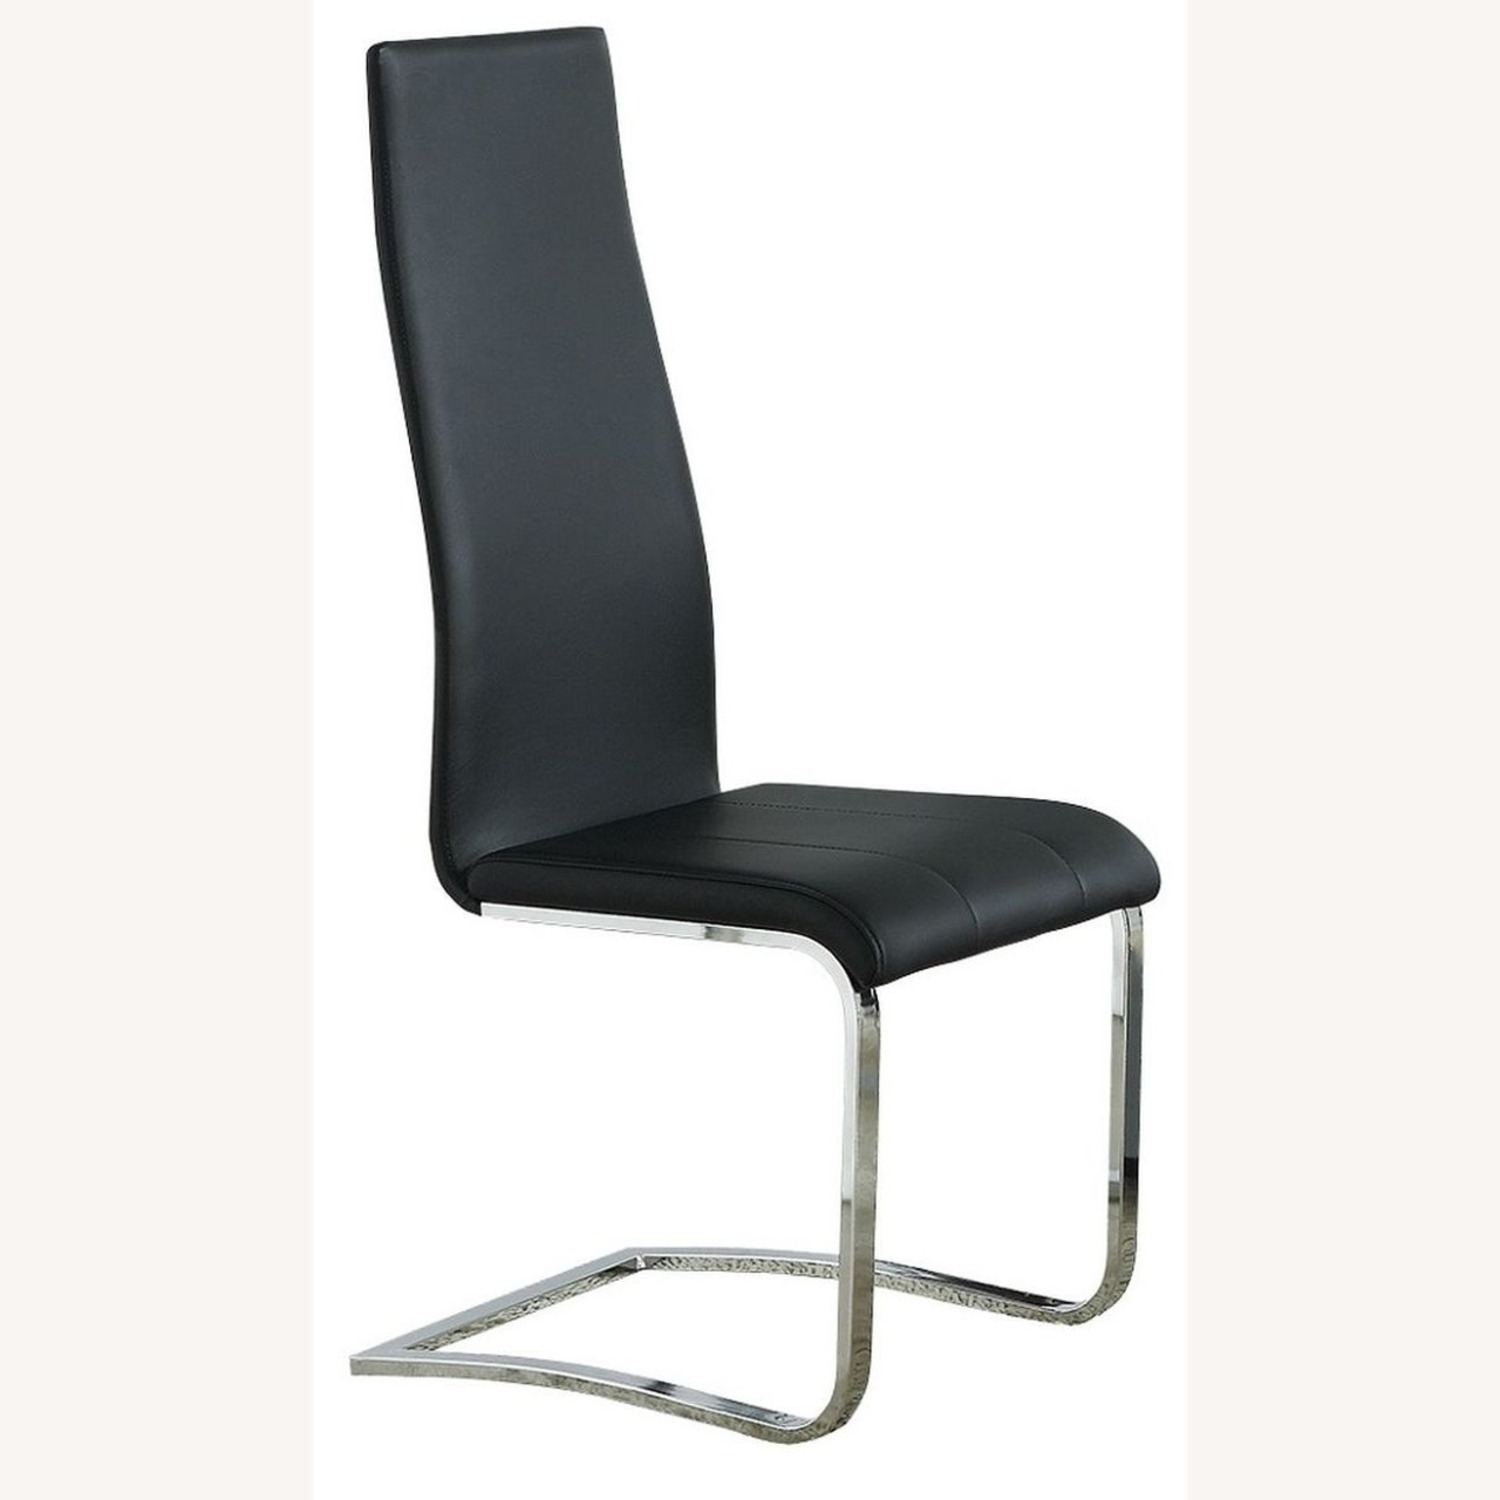 Iconic Breuer Style Side Chair In Black Leather - image-0